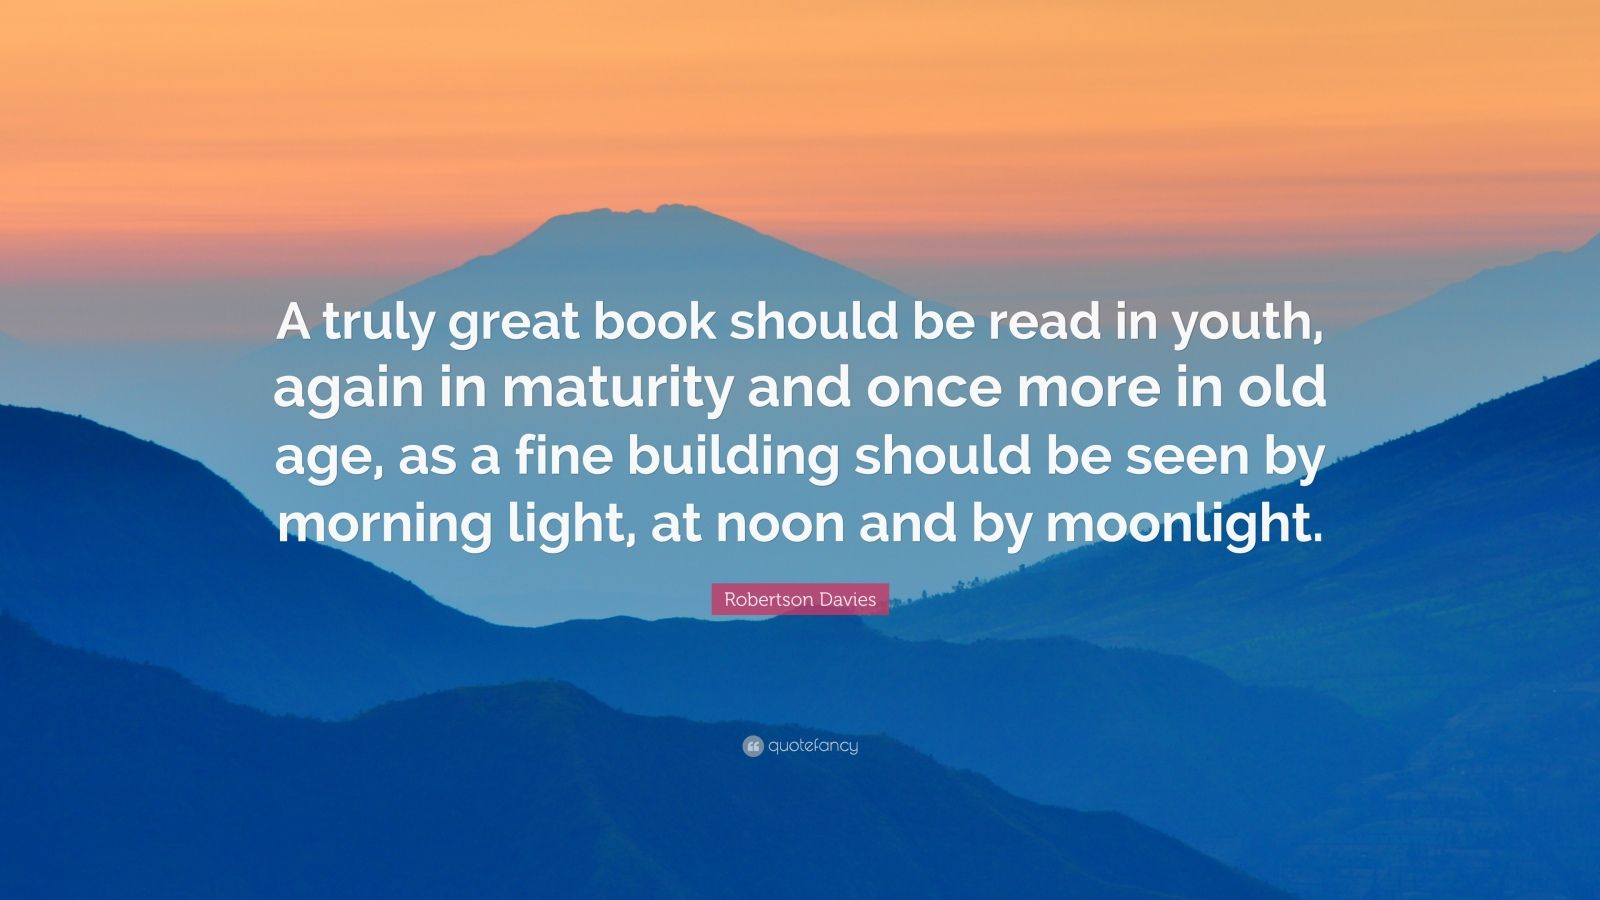 """Robertson Davies Quote: """"A truly great book should be read in youth, again in maturity and once more in old age, as a fine building should be seen by morning light, at noon and by moonlight."""""""